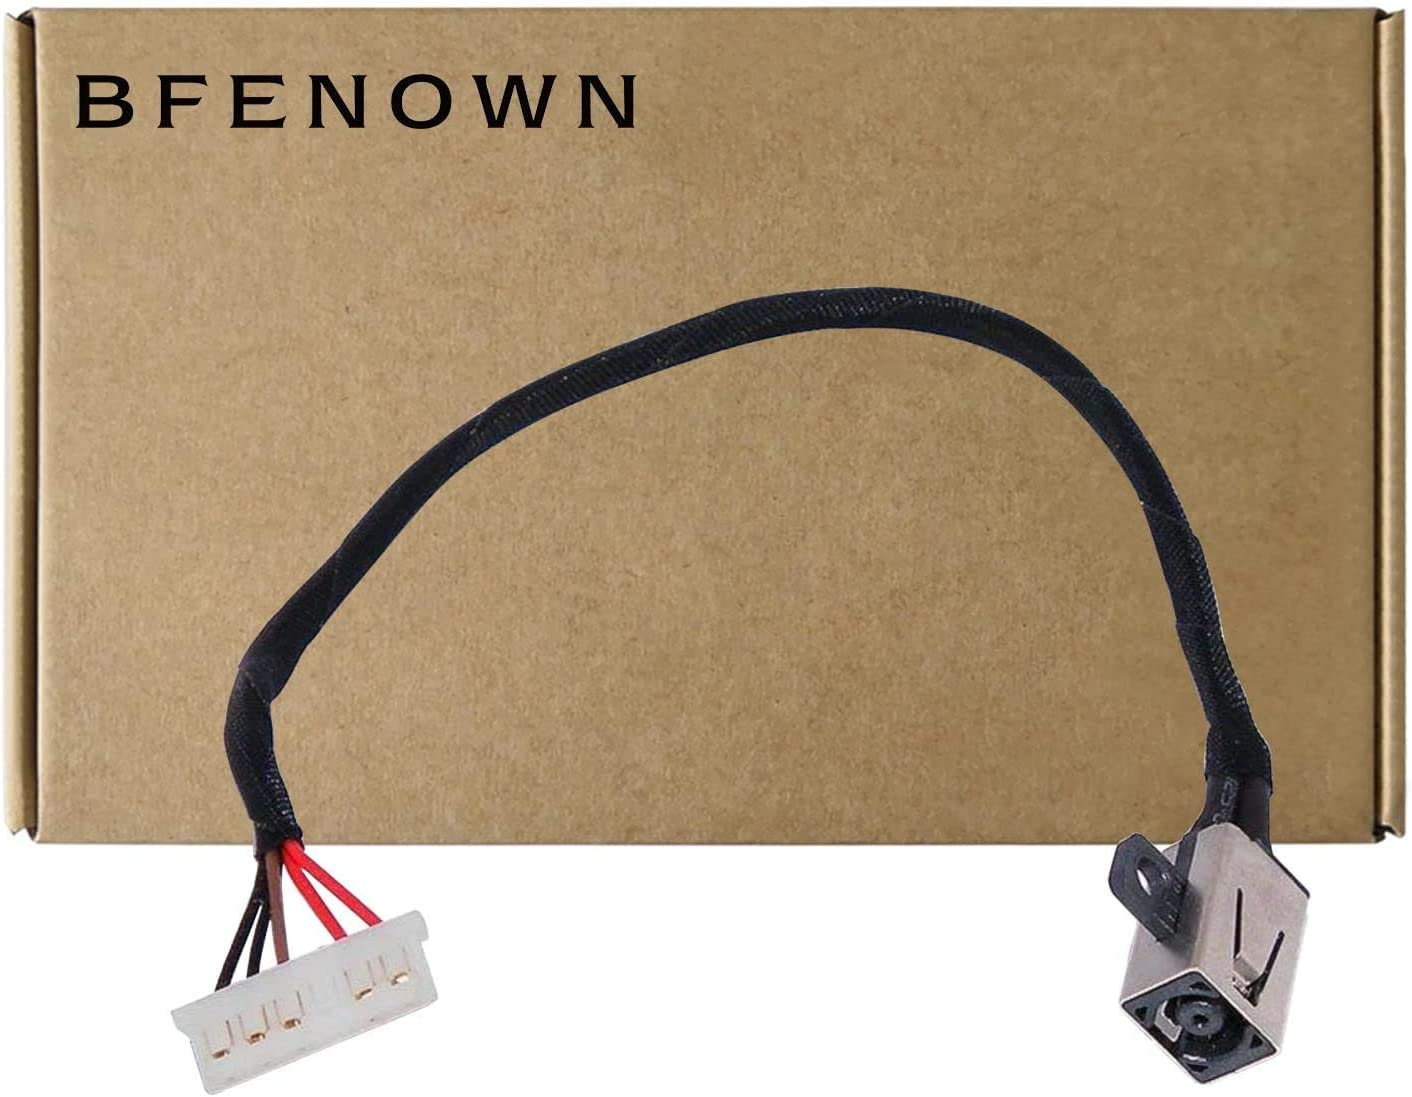 Bfenown DC Power Jack Harness Cable Replacement for Dell Inspiron 3452 3459 14-3451 14-3452 14-3458 14-5455 14-5458 15-3551 15-3552 15-3558 15-5000 15-5555 15-5558 Ryx4j